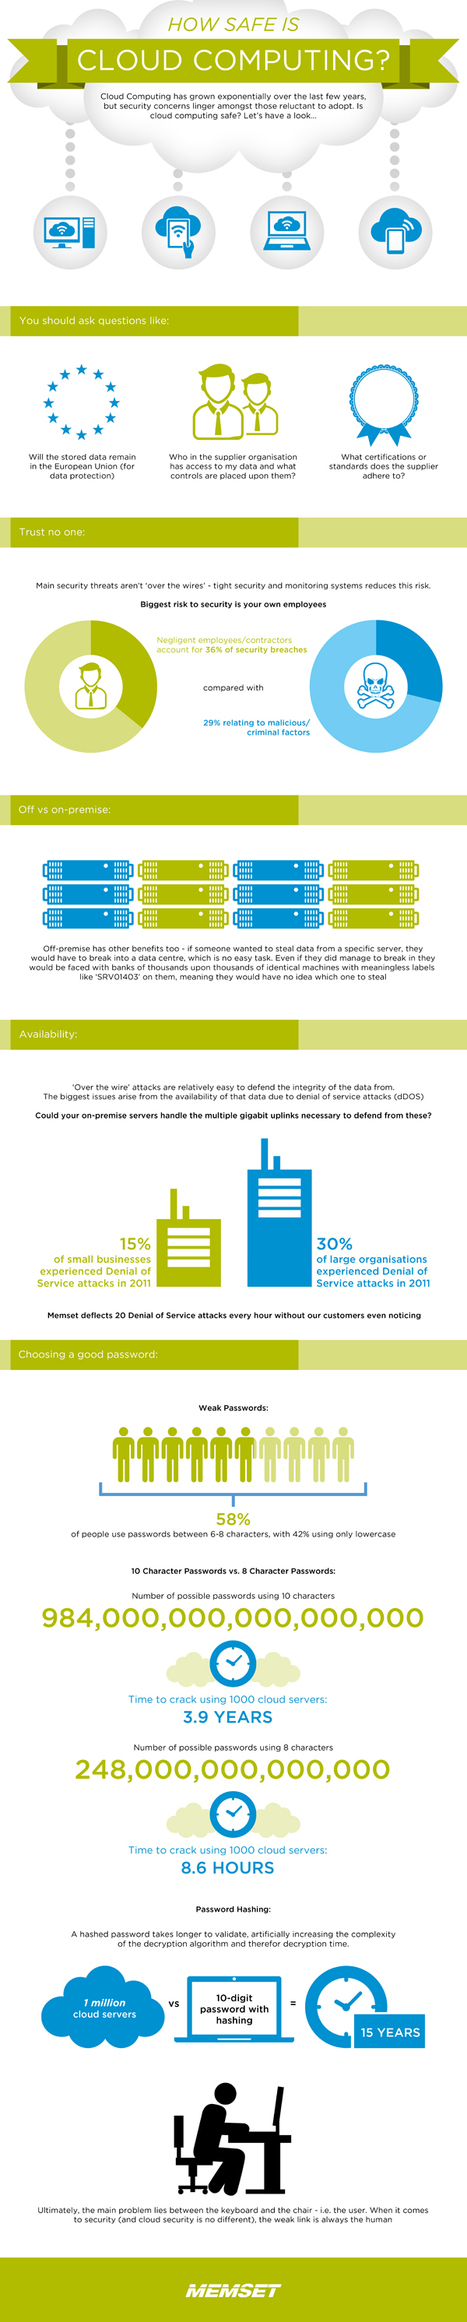 INFOGRAPHIC: How Safe is The Cloud? | MarketingHits | Scoop.it